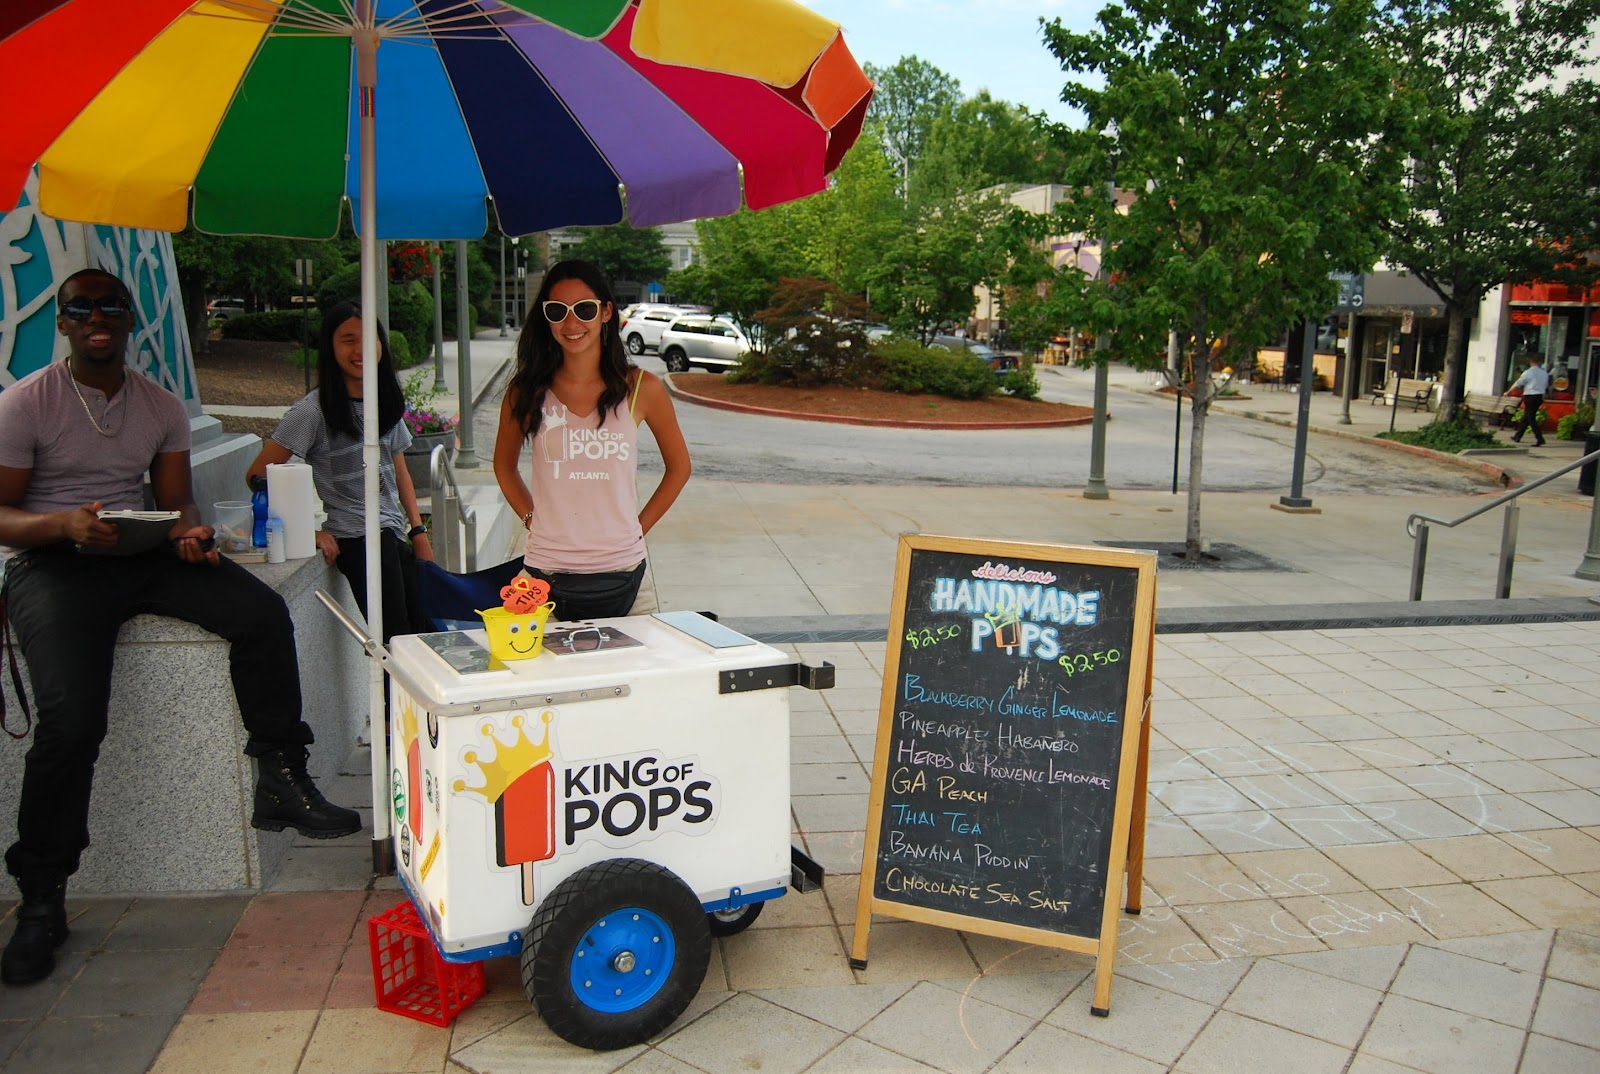 King of Pops Lottery